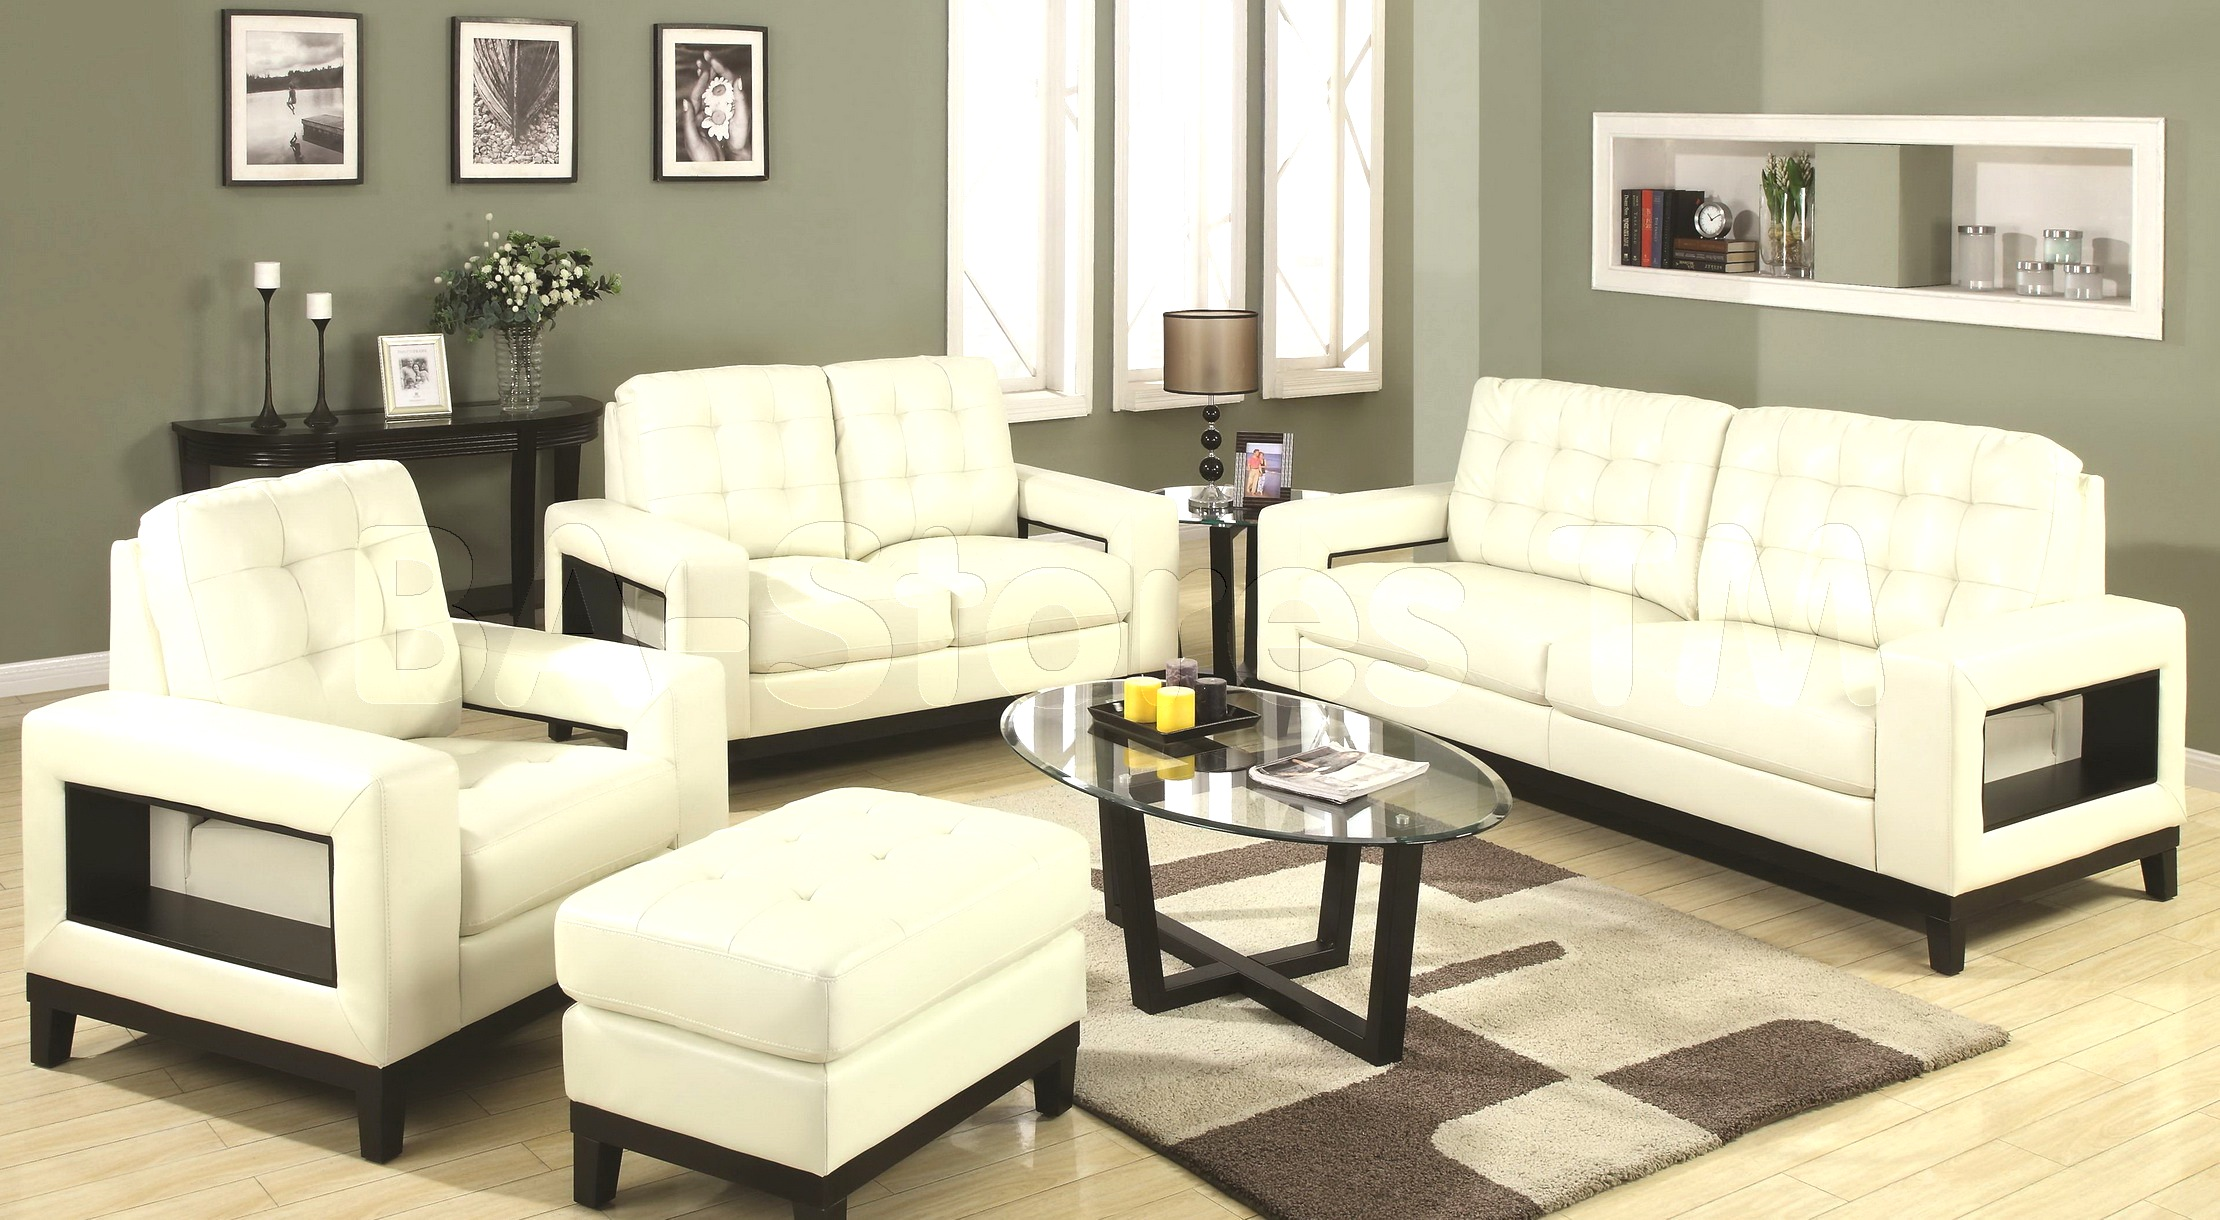 White living room furniture sets roselawnlutheran for Modern white living room furniture